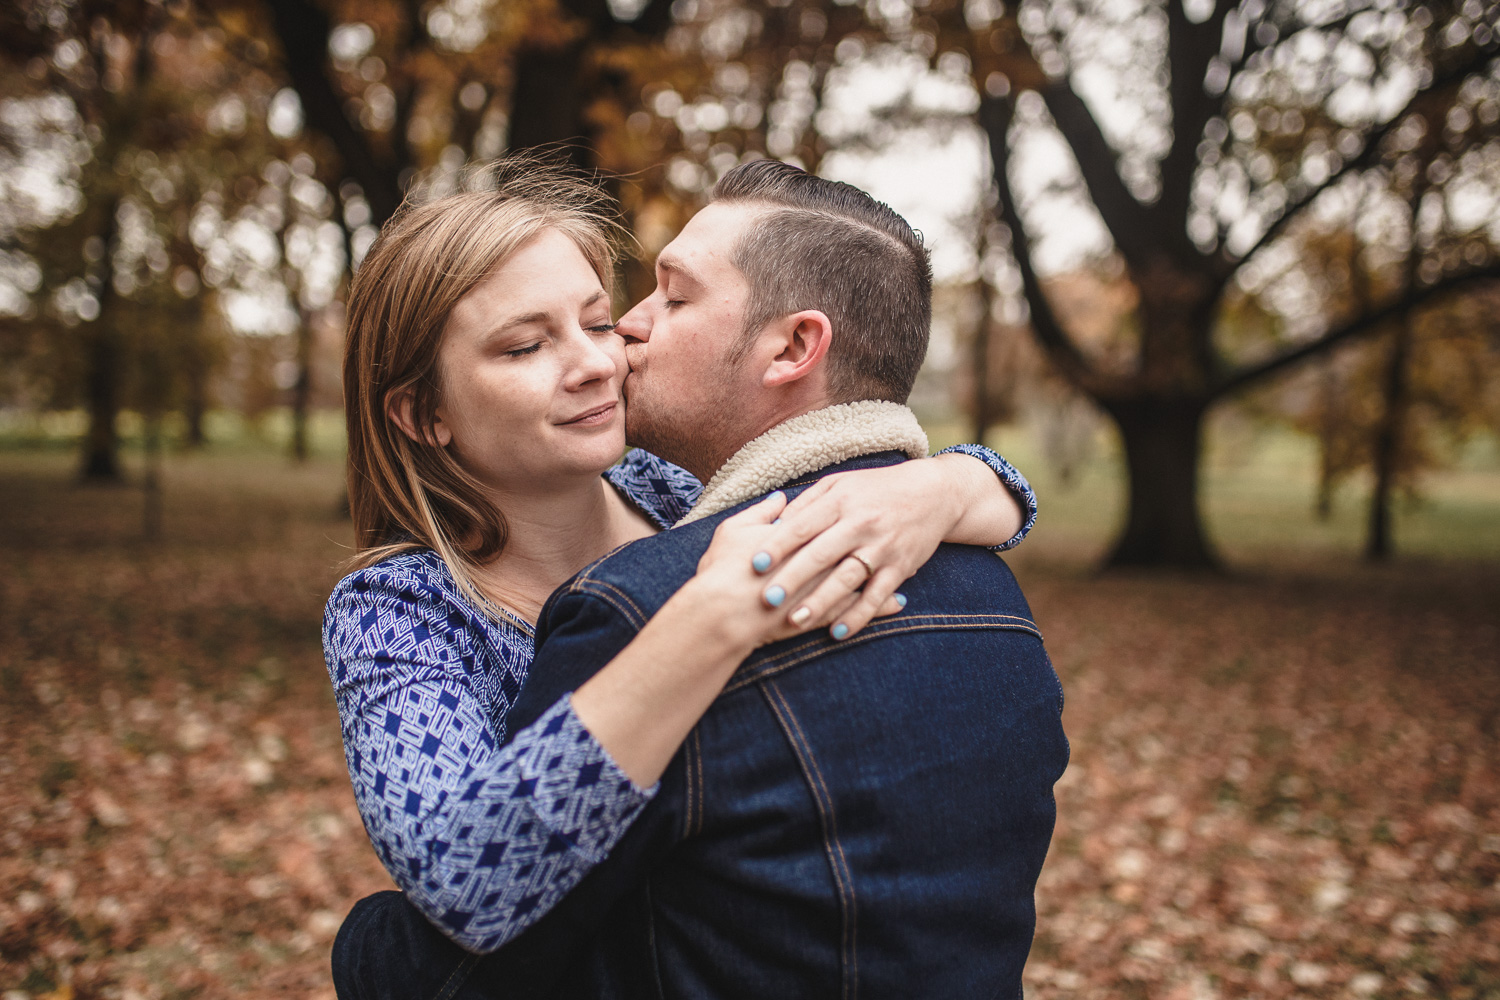 Kate_Bobby__Engagement_Session_Kansas_City_In_Home_Session_Autumn_Kelsey_Diane_Photography-0870.jpg